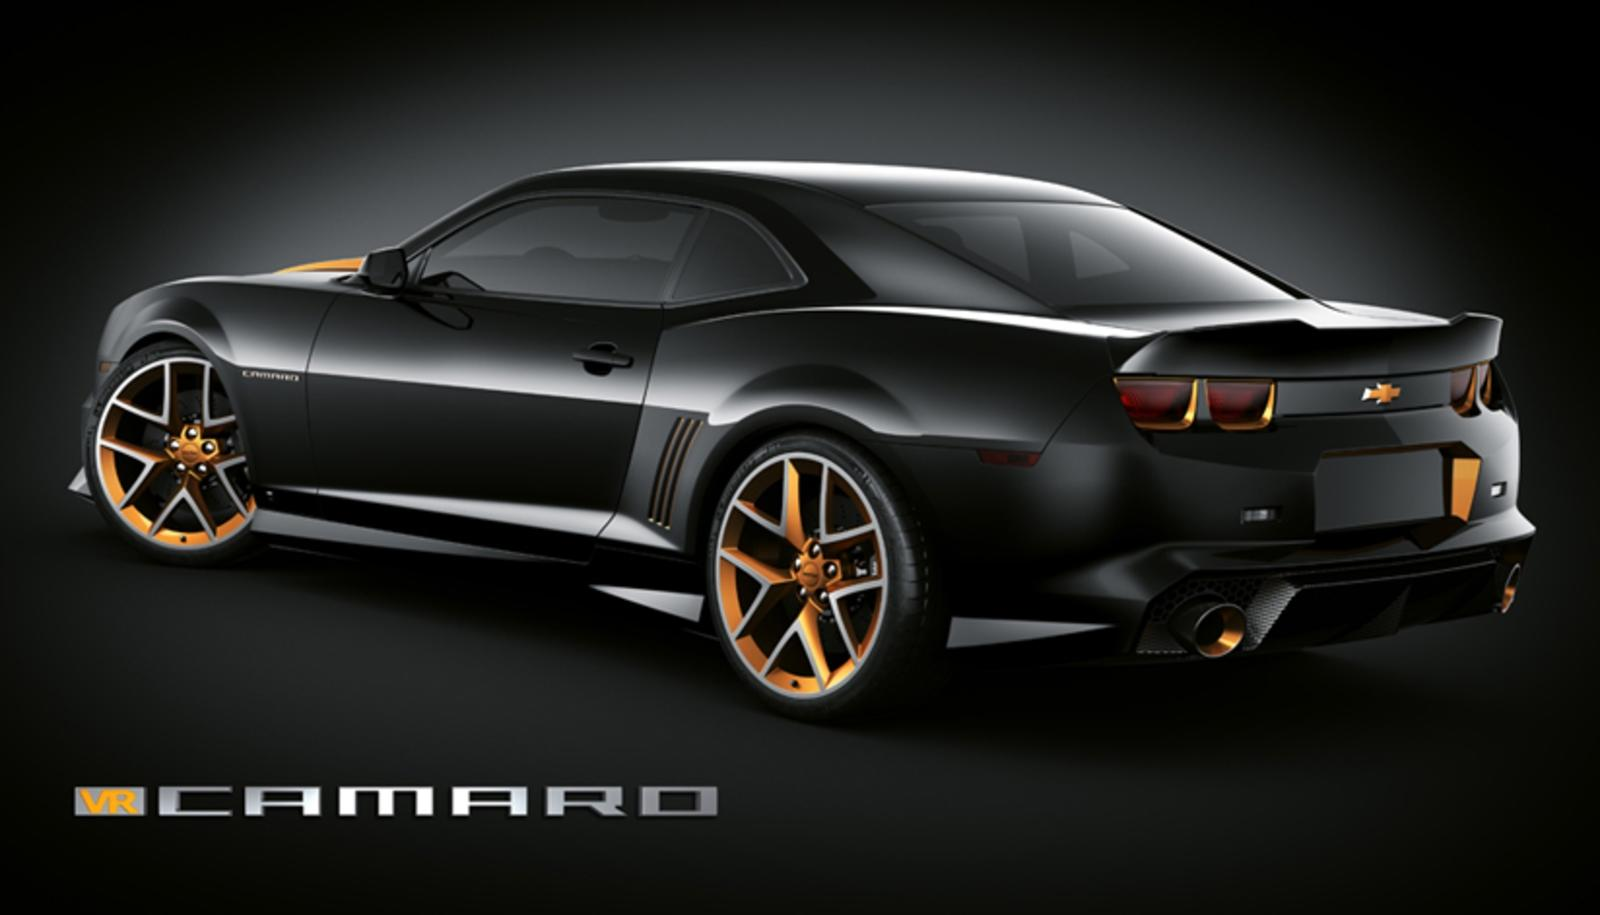 Chevy Muscle Cars >> VR Chevrolet Camaro - Or How A British Camaro Will Look Like News - Top Speed